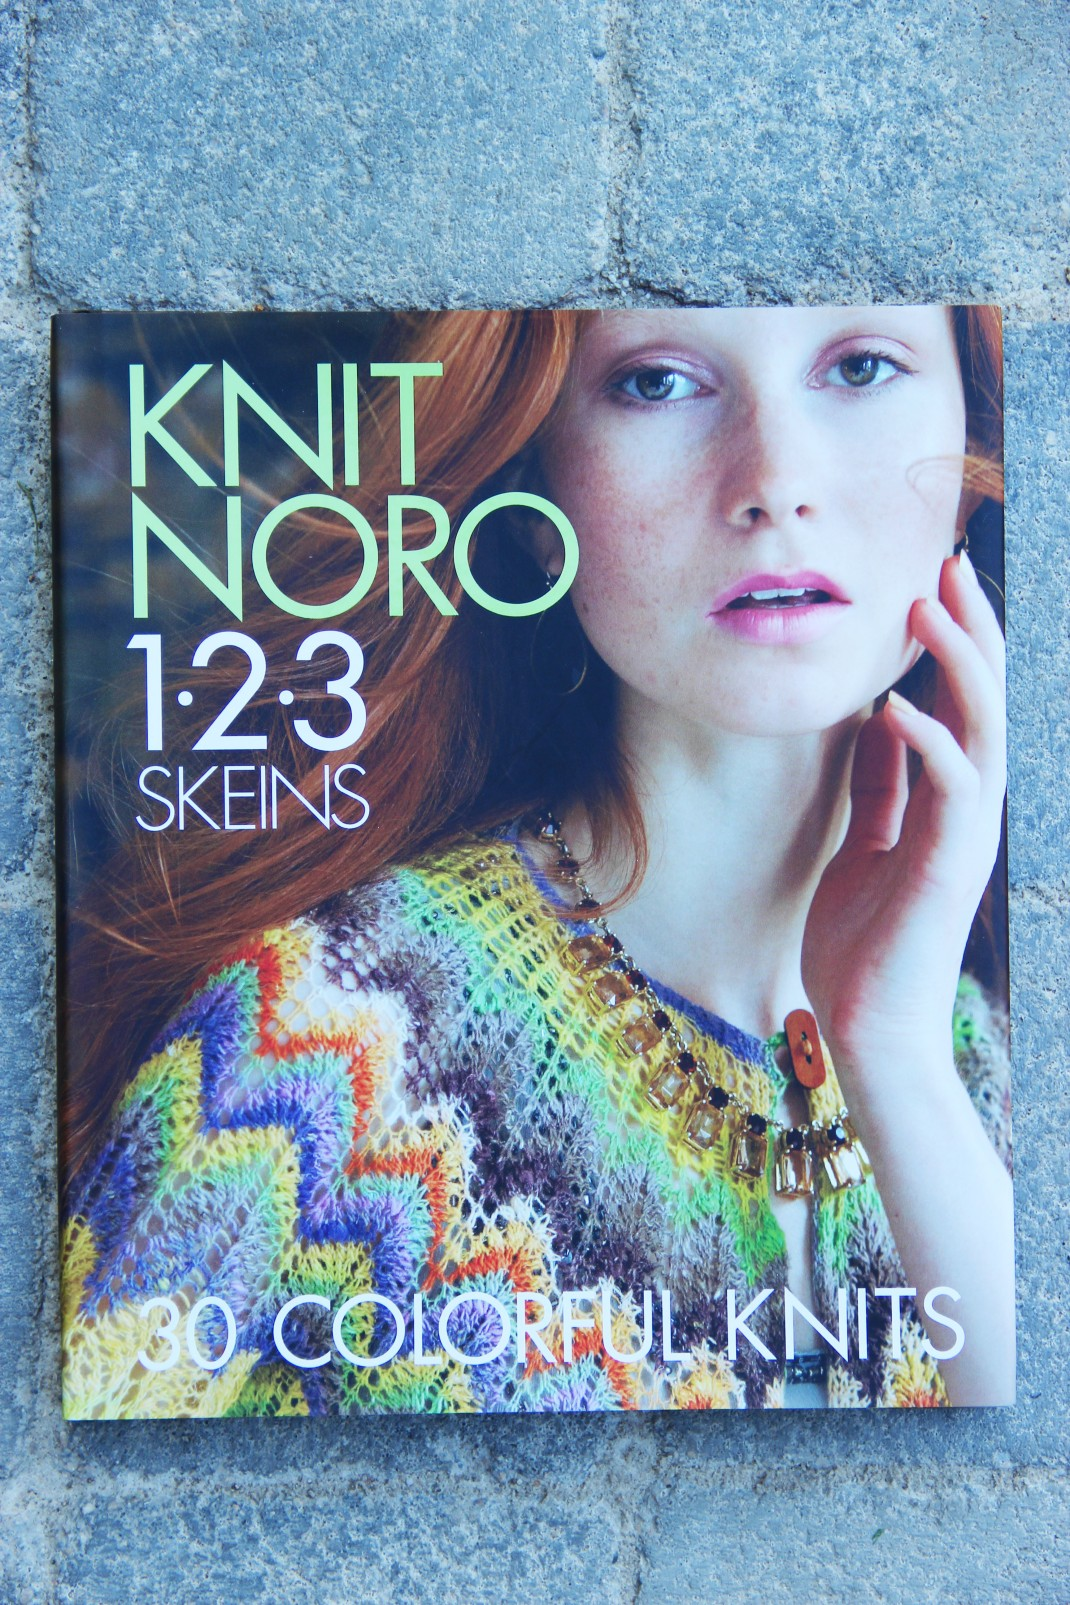 Knit Noro 1,2,3 skeins